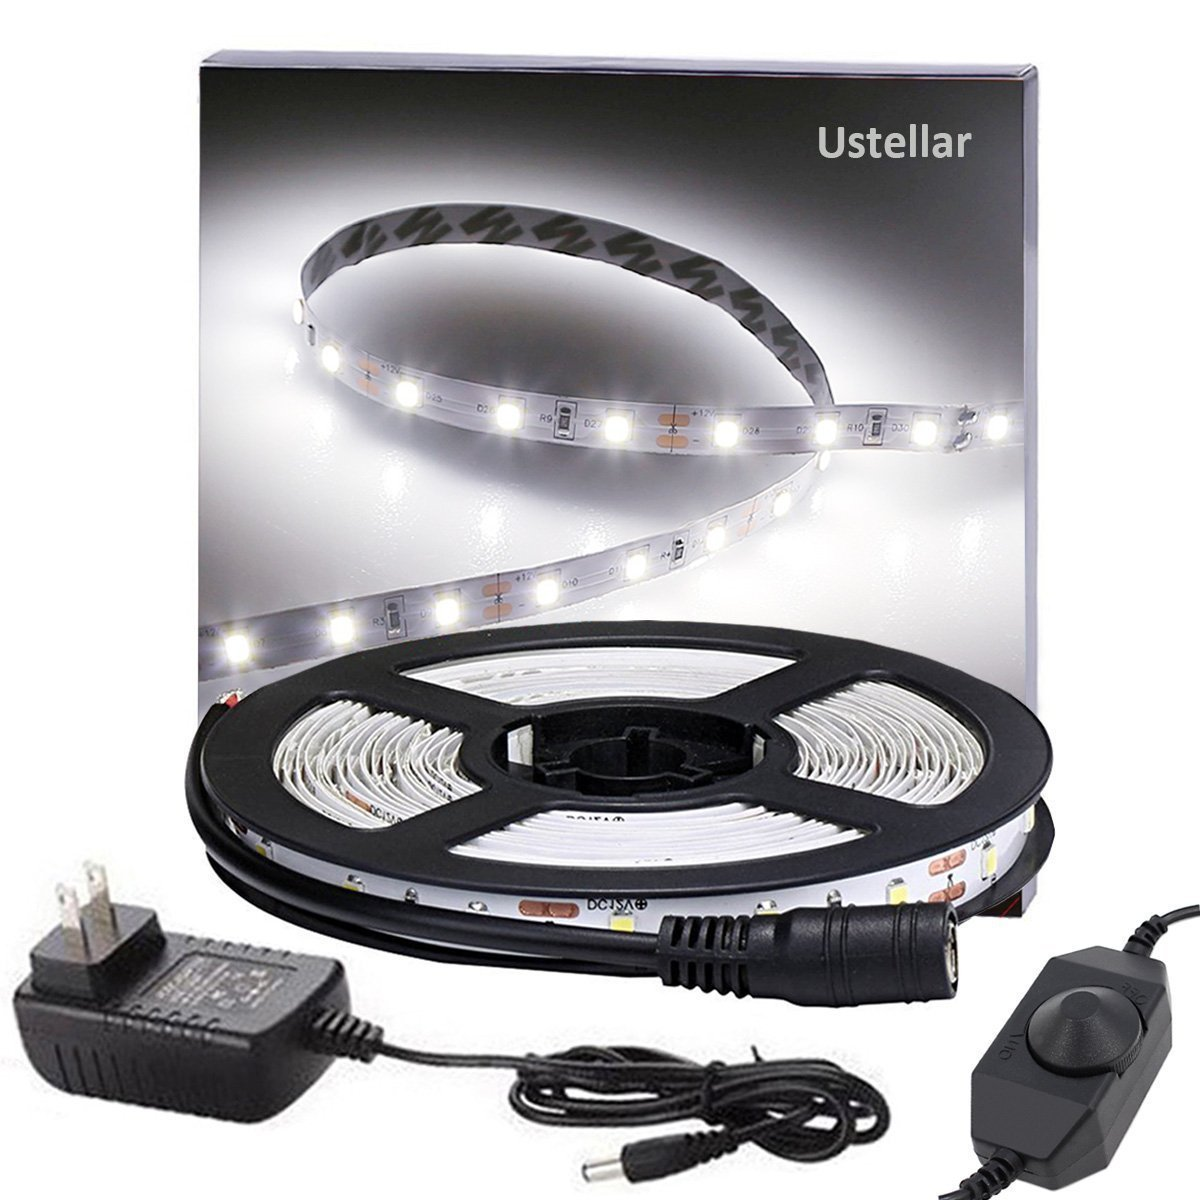 Ustellar Dimmable LED Light Strip Kit, 300 Units SMD 2835 LEDs, 16.4ft/5m 12V LED Ribbon, 6000K Daylight White Under Cabinet Lighting Strips, Non-waterproof LED Tape, UL Listed Power Supply by Ustellar